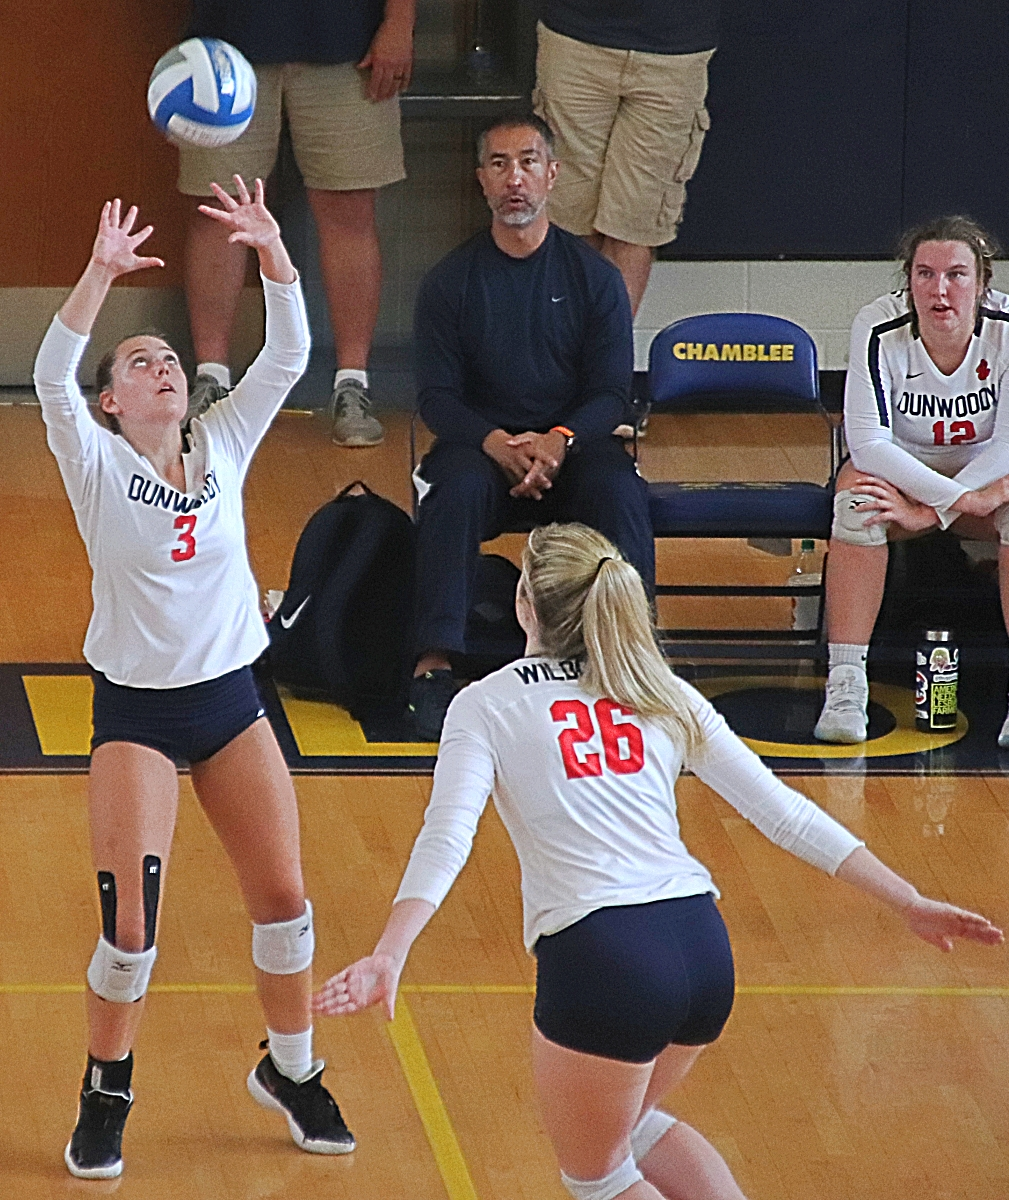 Dunwoody travels to Chamblee to face the Bulldogs and Tucker to open 2020 volleyball season. (Photo by Mark Brock)